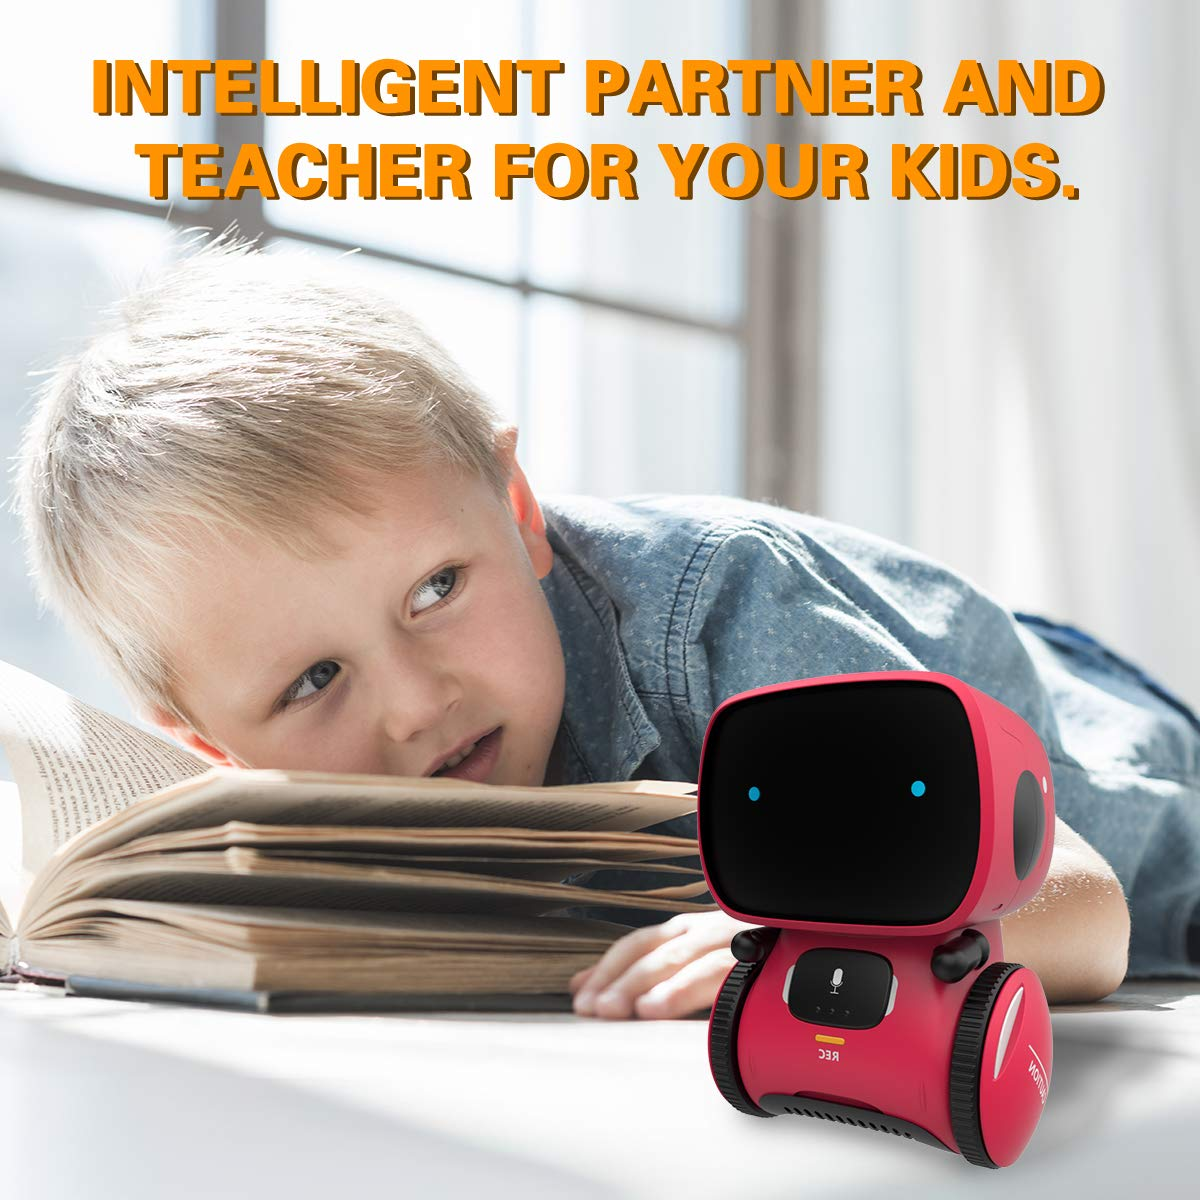 98K Kids Robot Toy, Smart Talking Robots, Gift for Boys and Girls Age 3+, Intelligent Partner and Teacher, with Voice Controlled and Touch Sensor, Singing, Dancing, Repeating by 98K (Image #7)